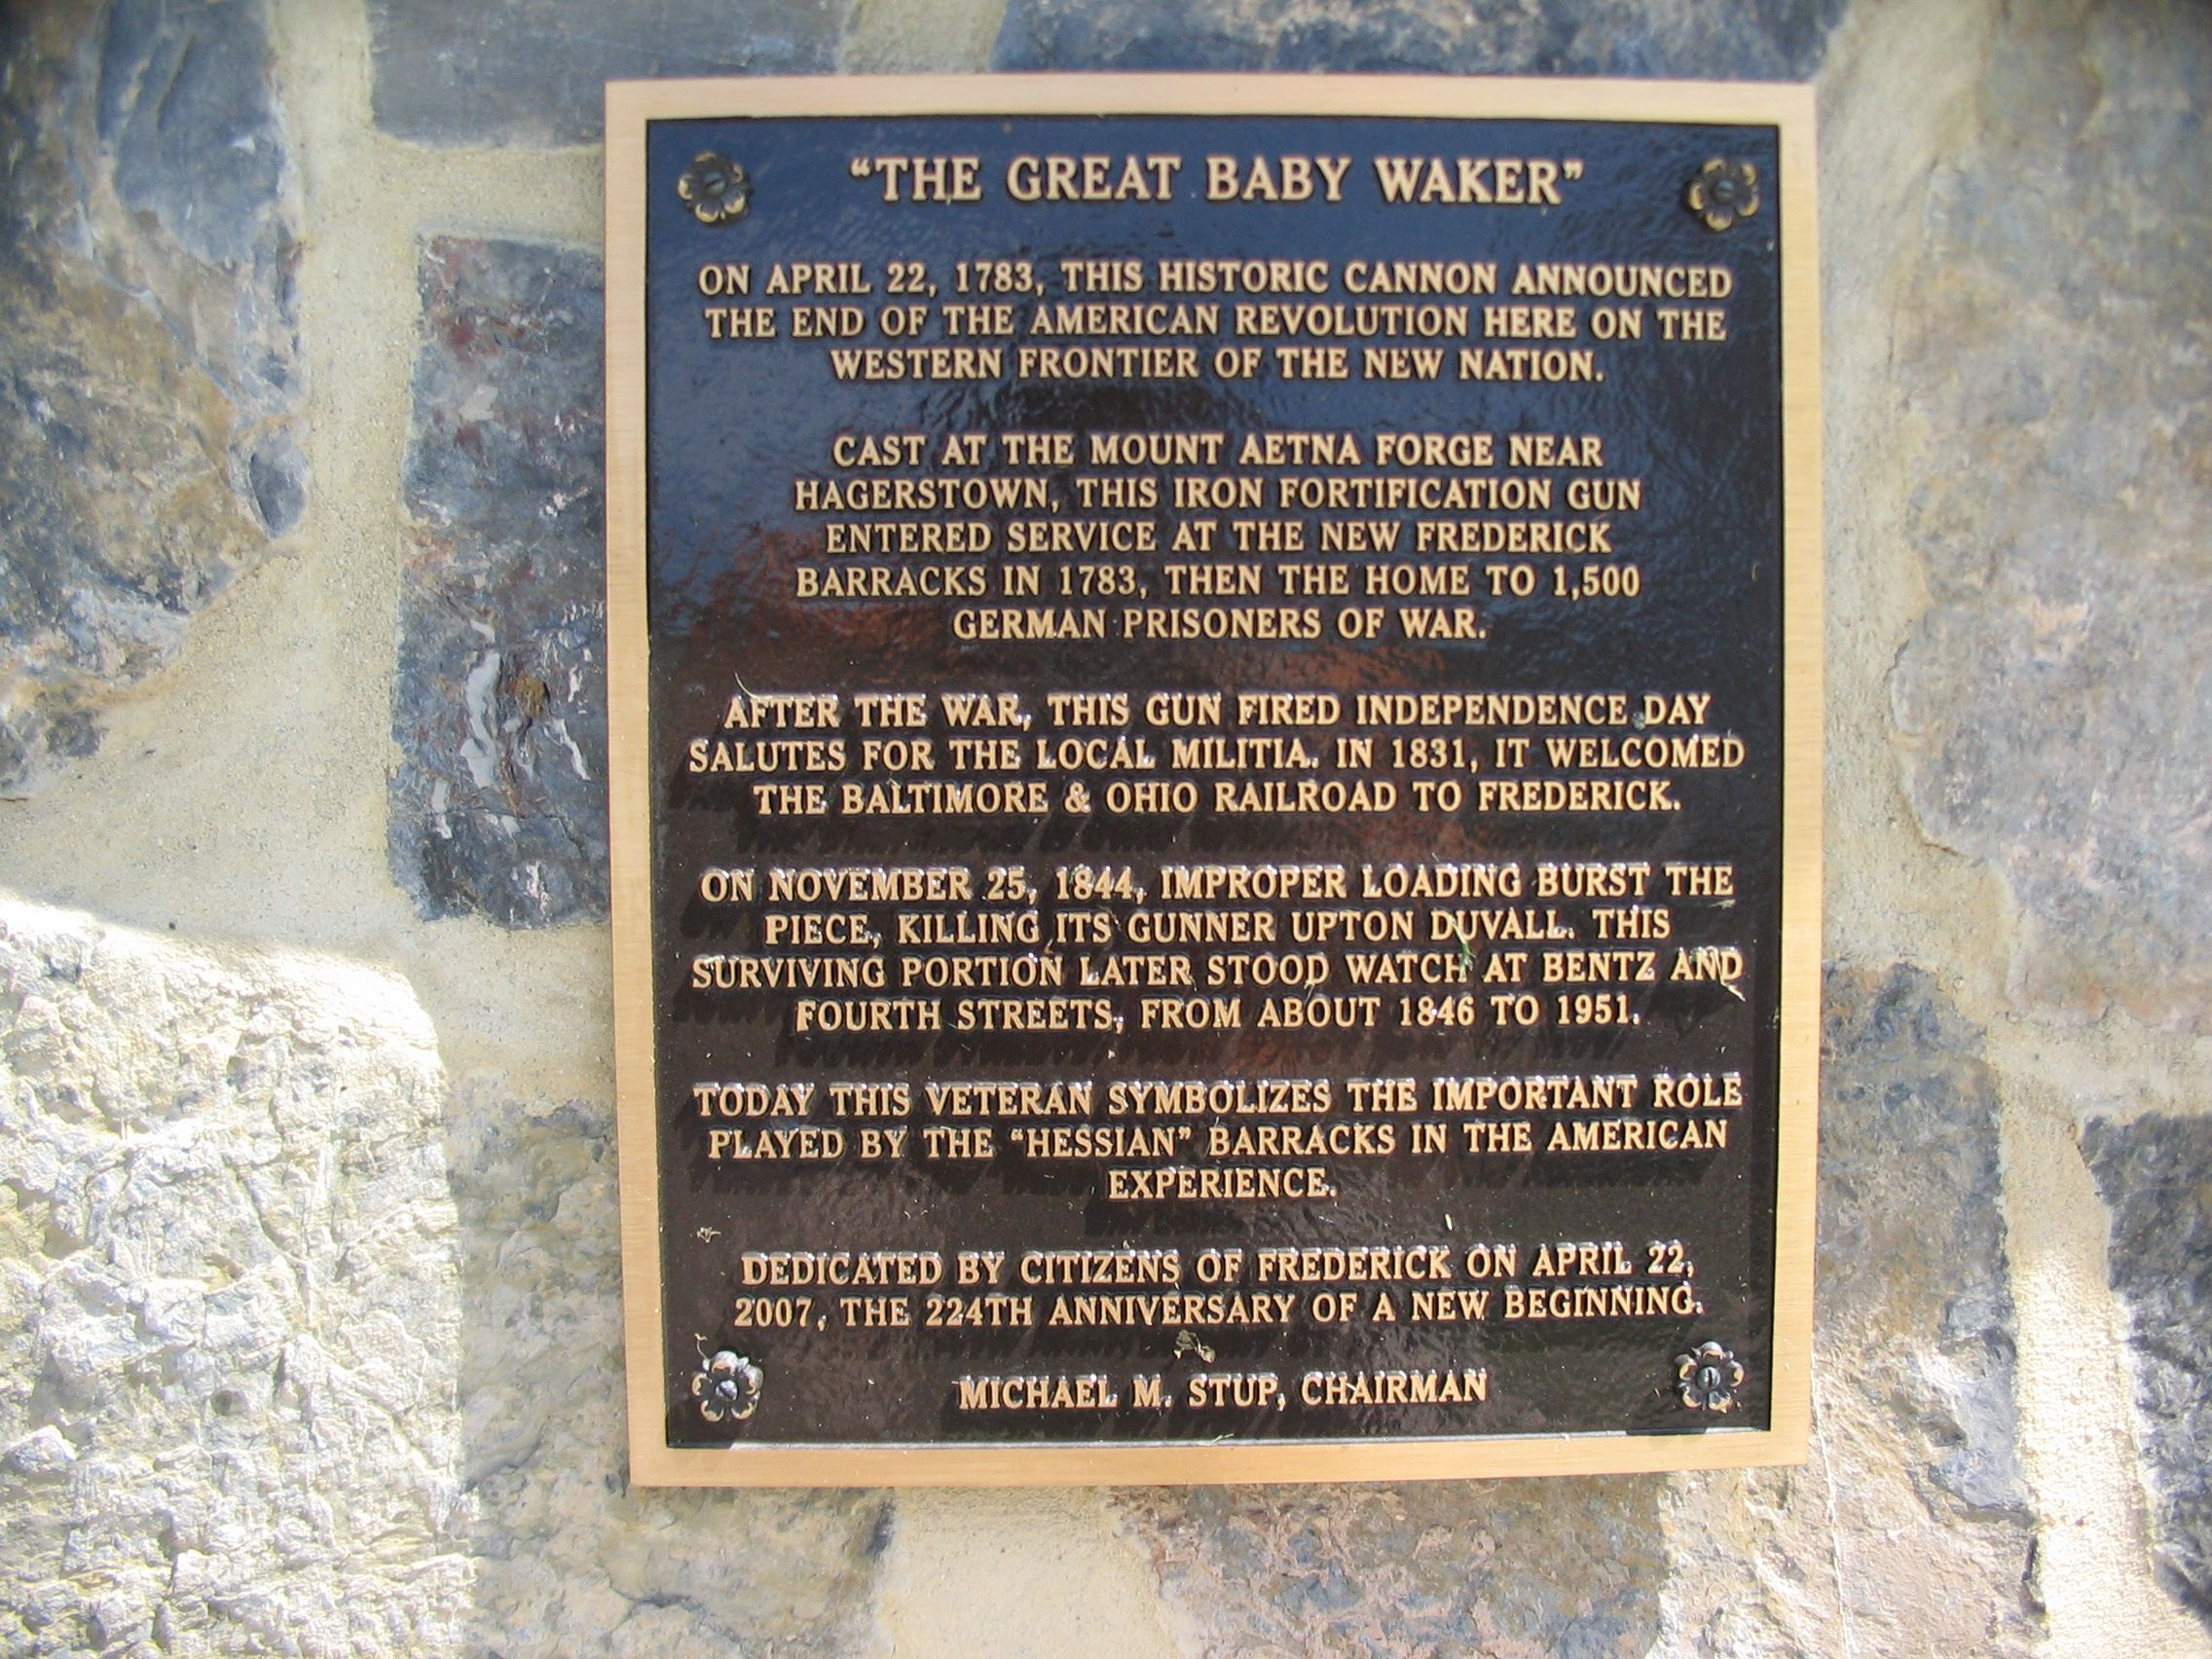 """The Great Baby Waker"" Marker"